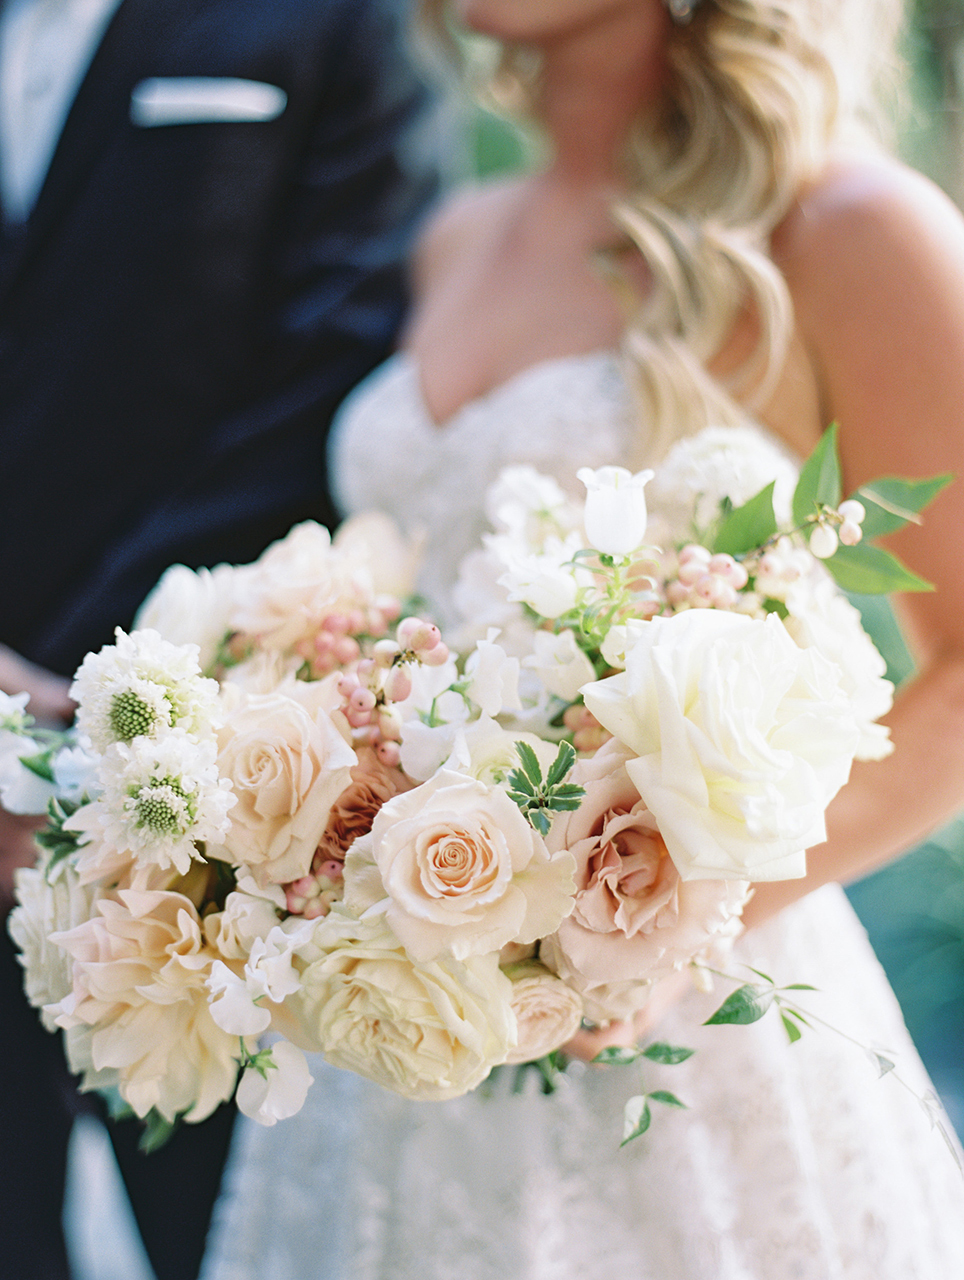 wedding bride bouquet floral blooms and greenery